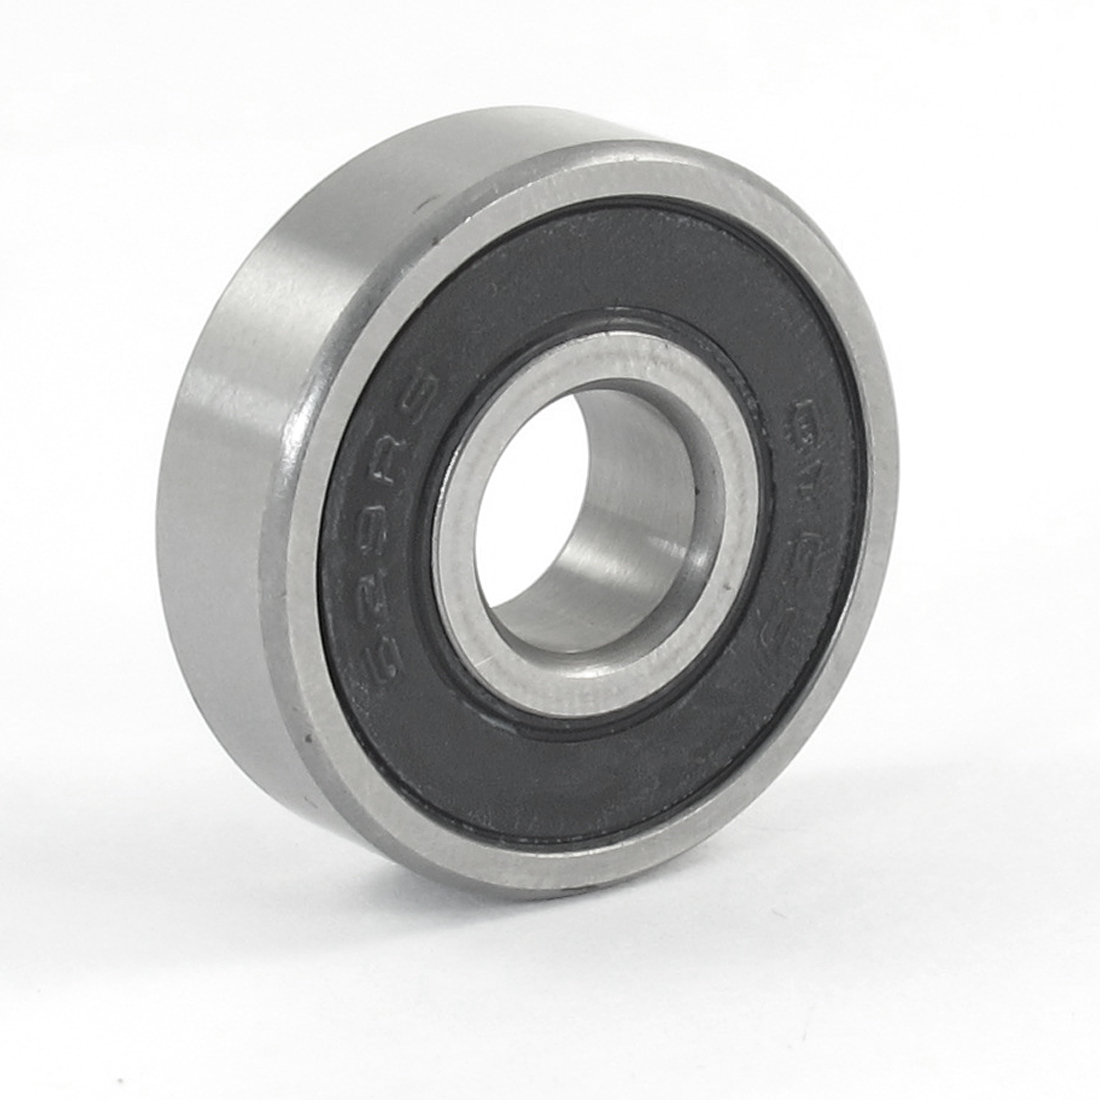 Roller-Skating Skateboard Seals 629RS Deep Groove Ball Bearing 26mm x 9mm x 8mm